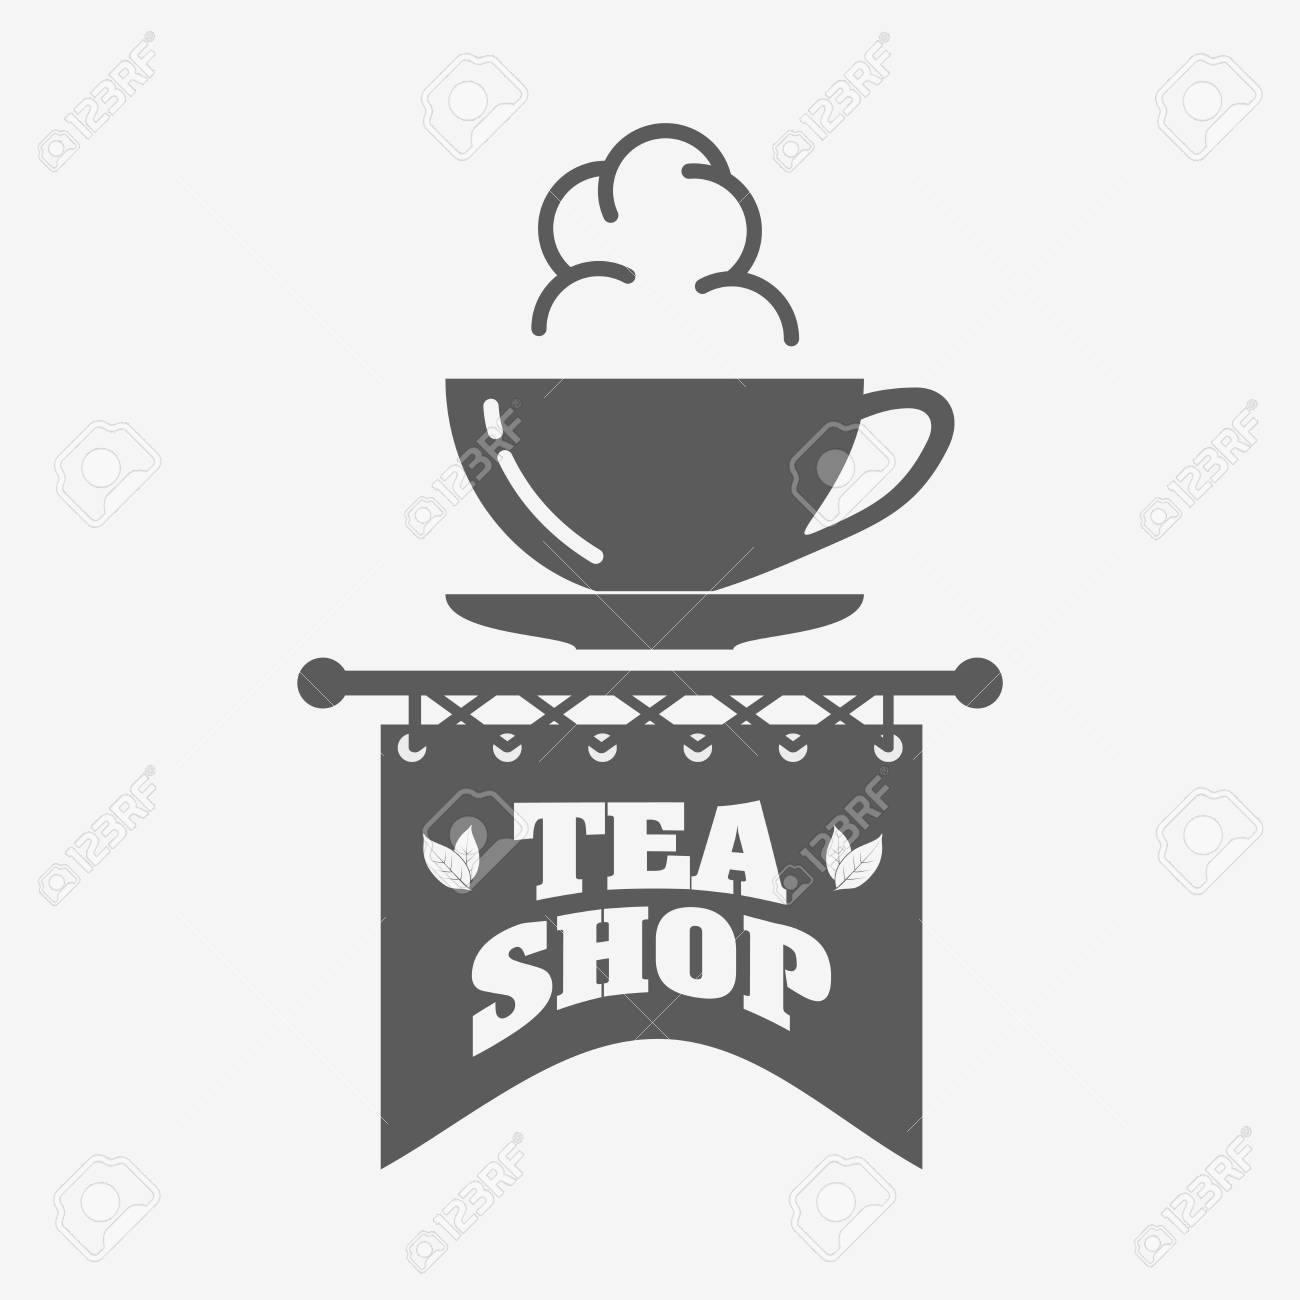 Tea Shop Logo, Badge Or Label Design Template With Tea Cup Royalty ...